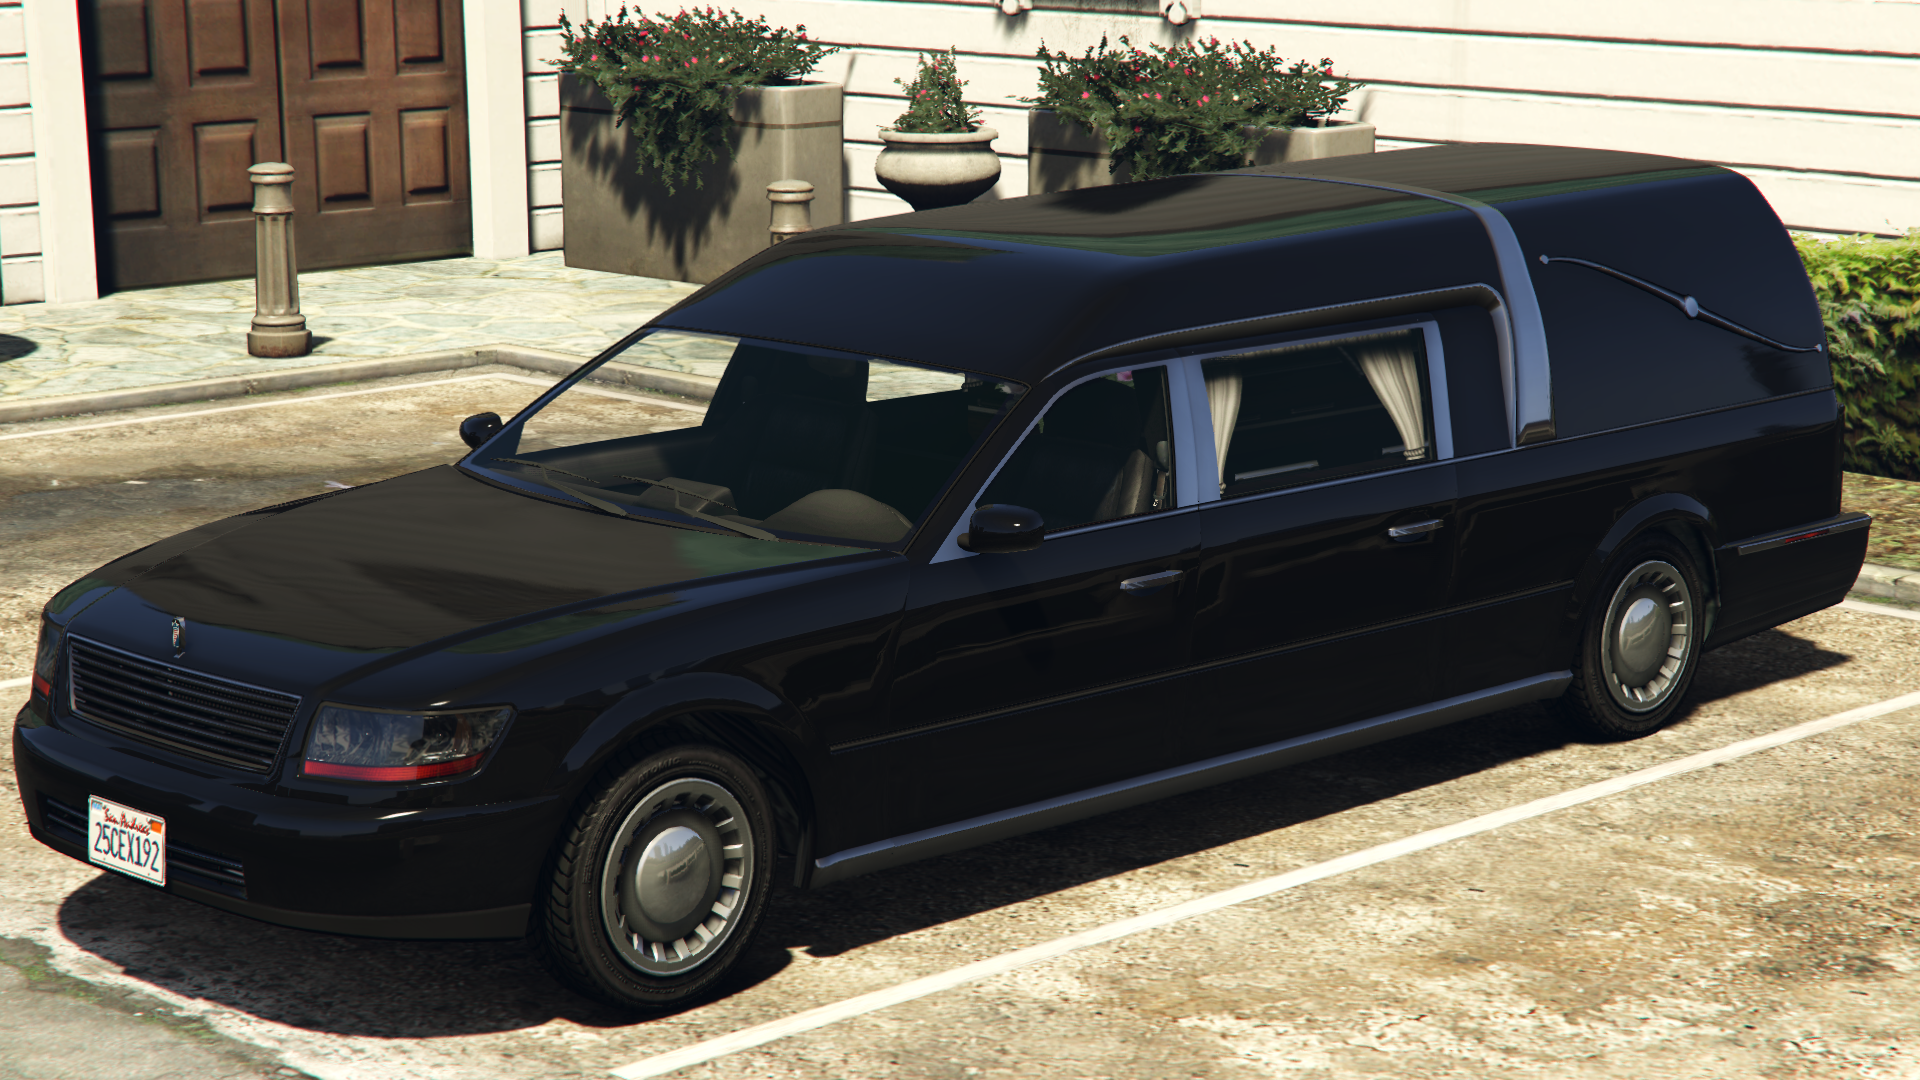 Romero Hearse Gta Wiki Fandom Powered By Wikia